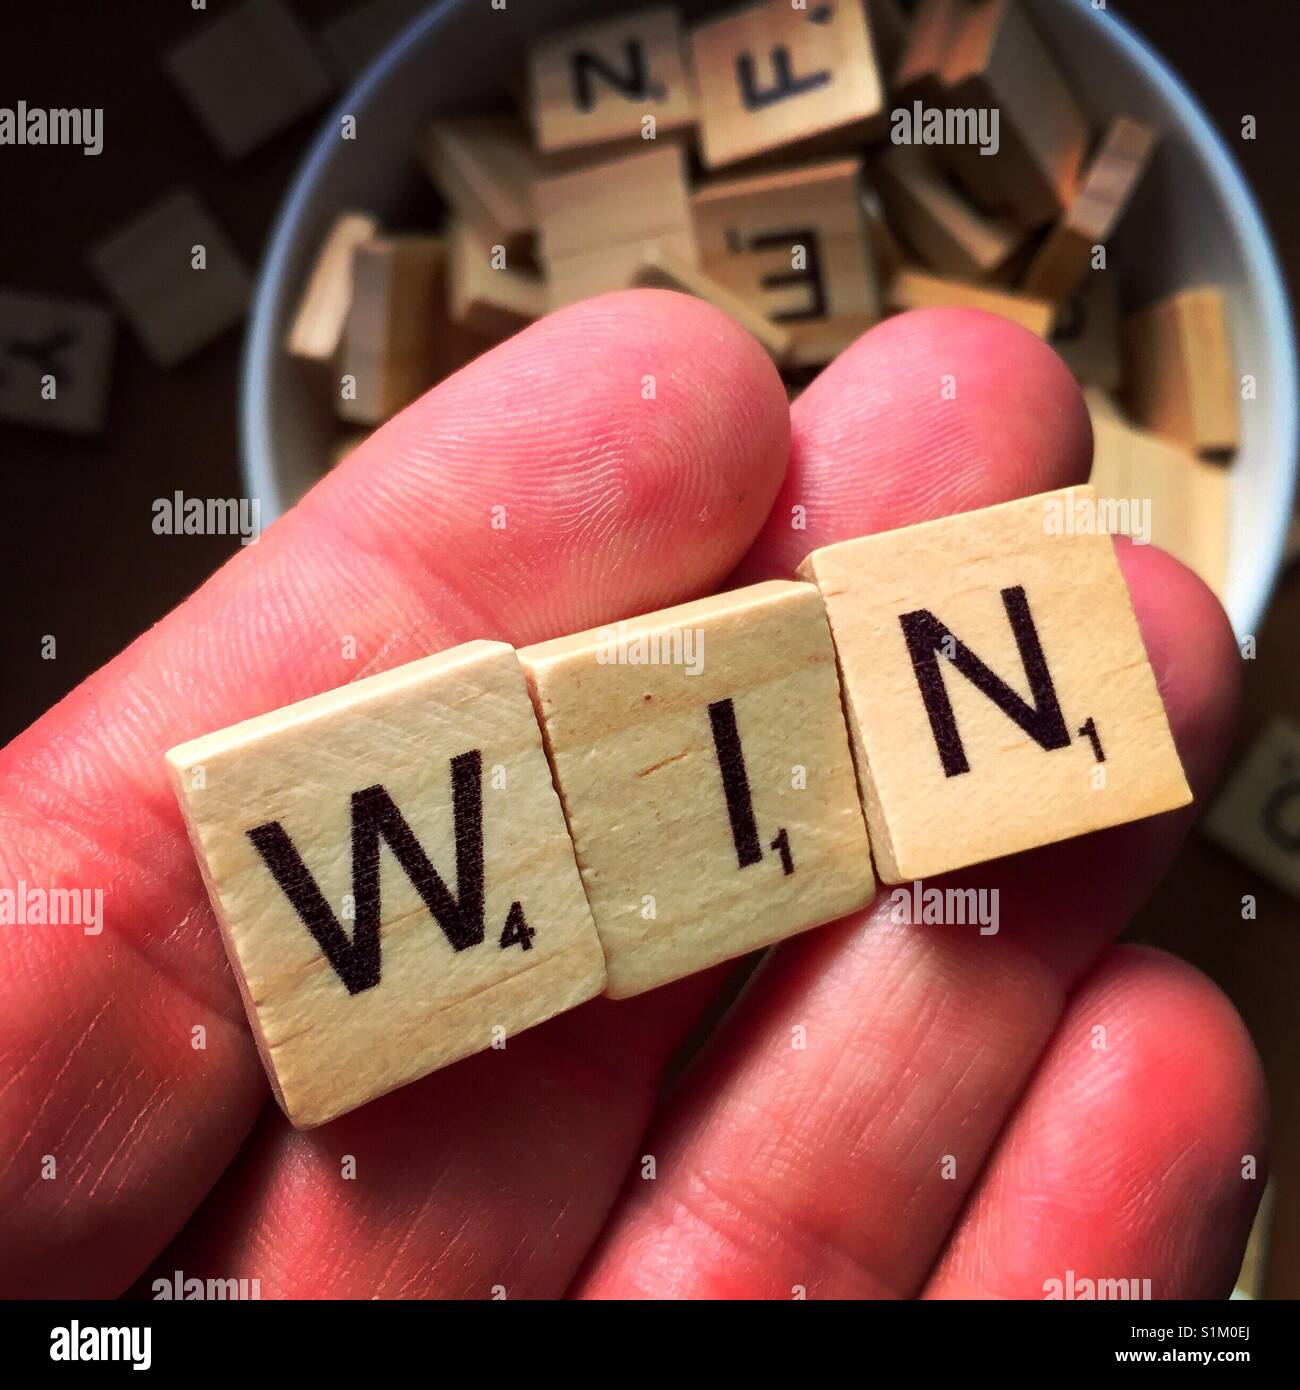 A close up shot of a man's hand holding wooden letters spelling win with other wooden letters in the background - Stock Image